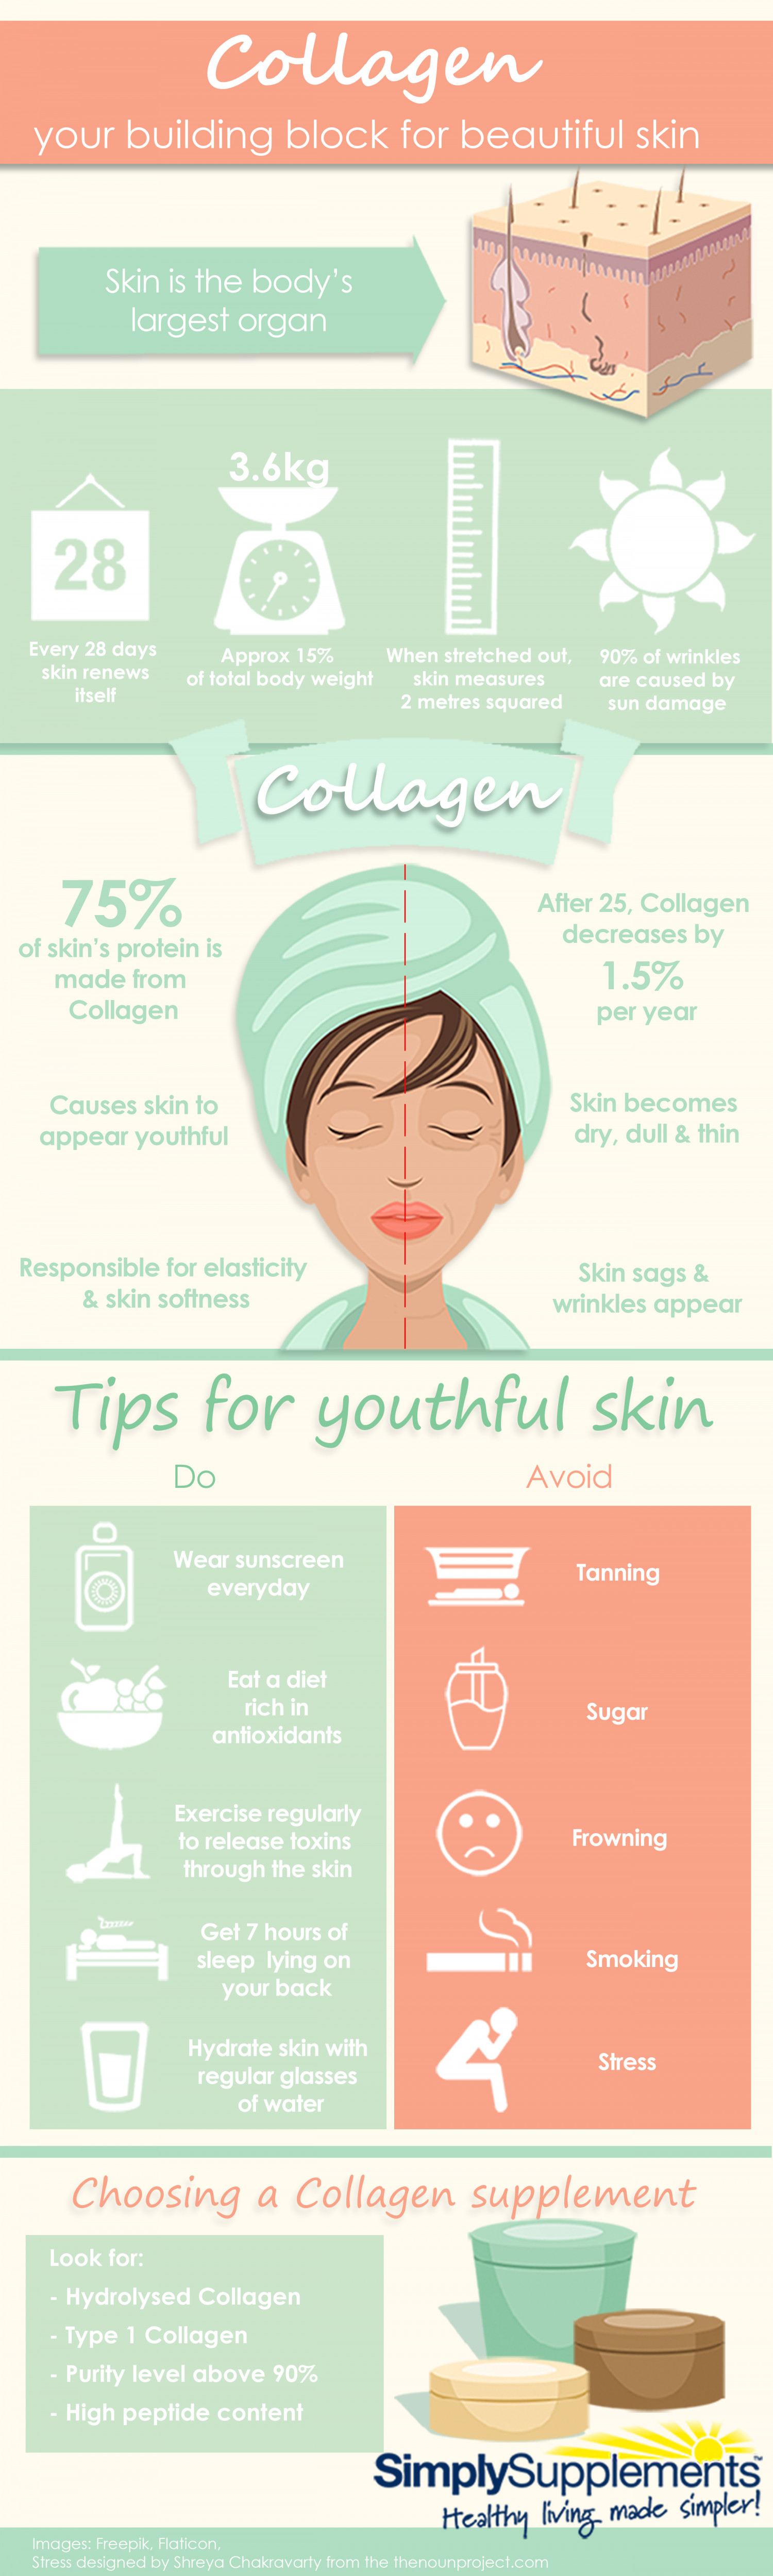 Collagen: Your building block for beautiful skin Infographic